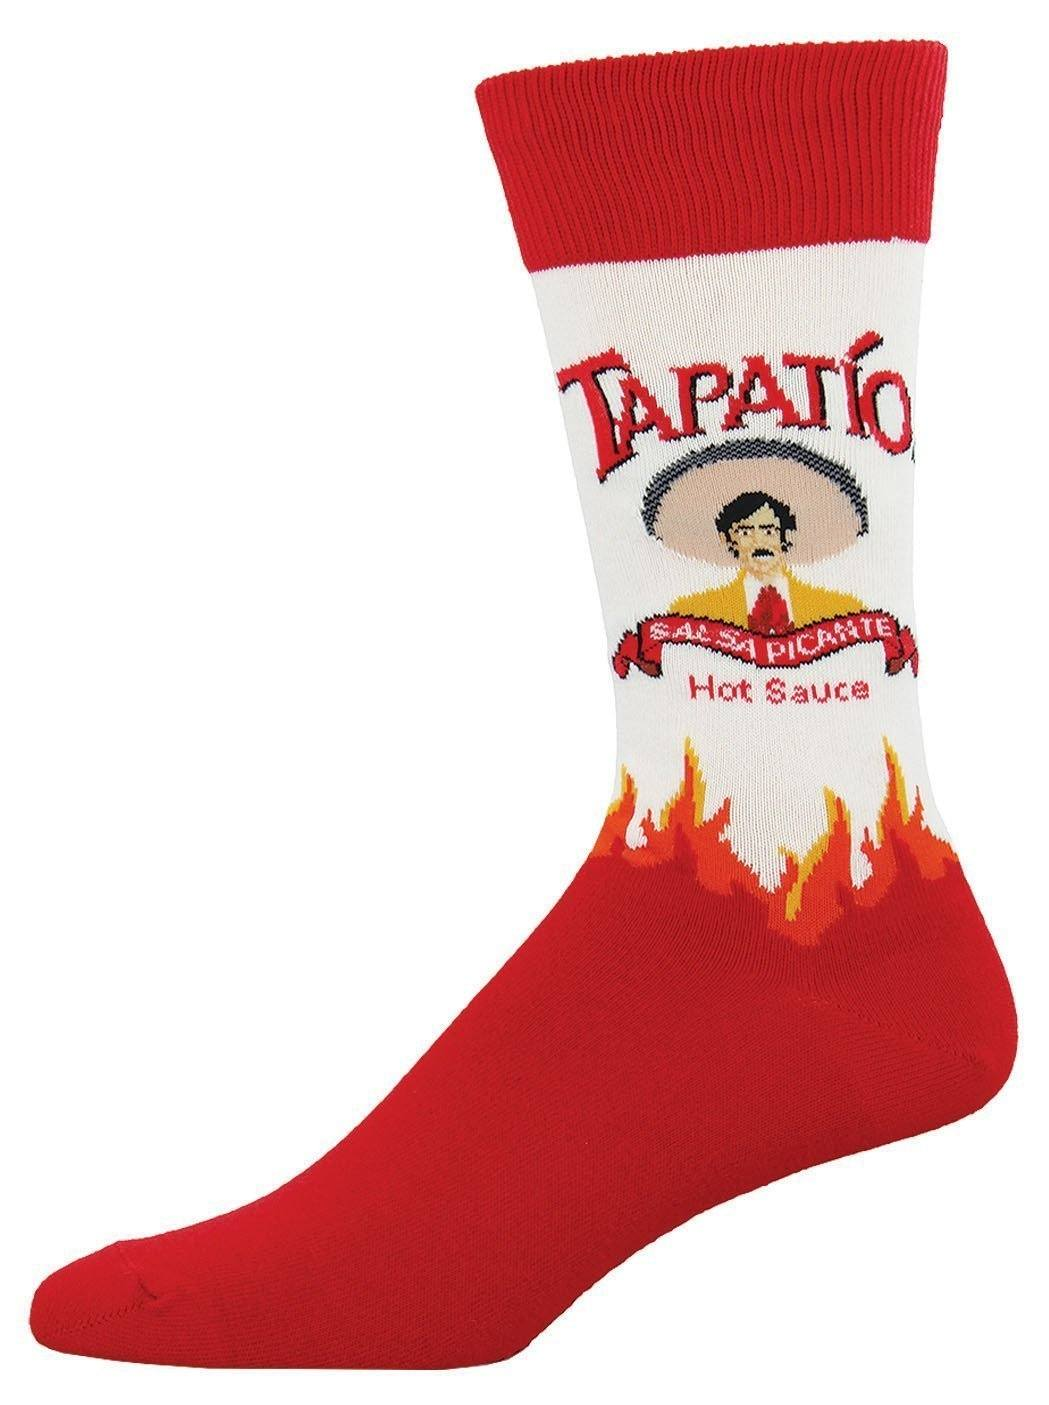 Socksmith - Tapatío Crew Socks | Men's - Knock Your Socks Off